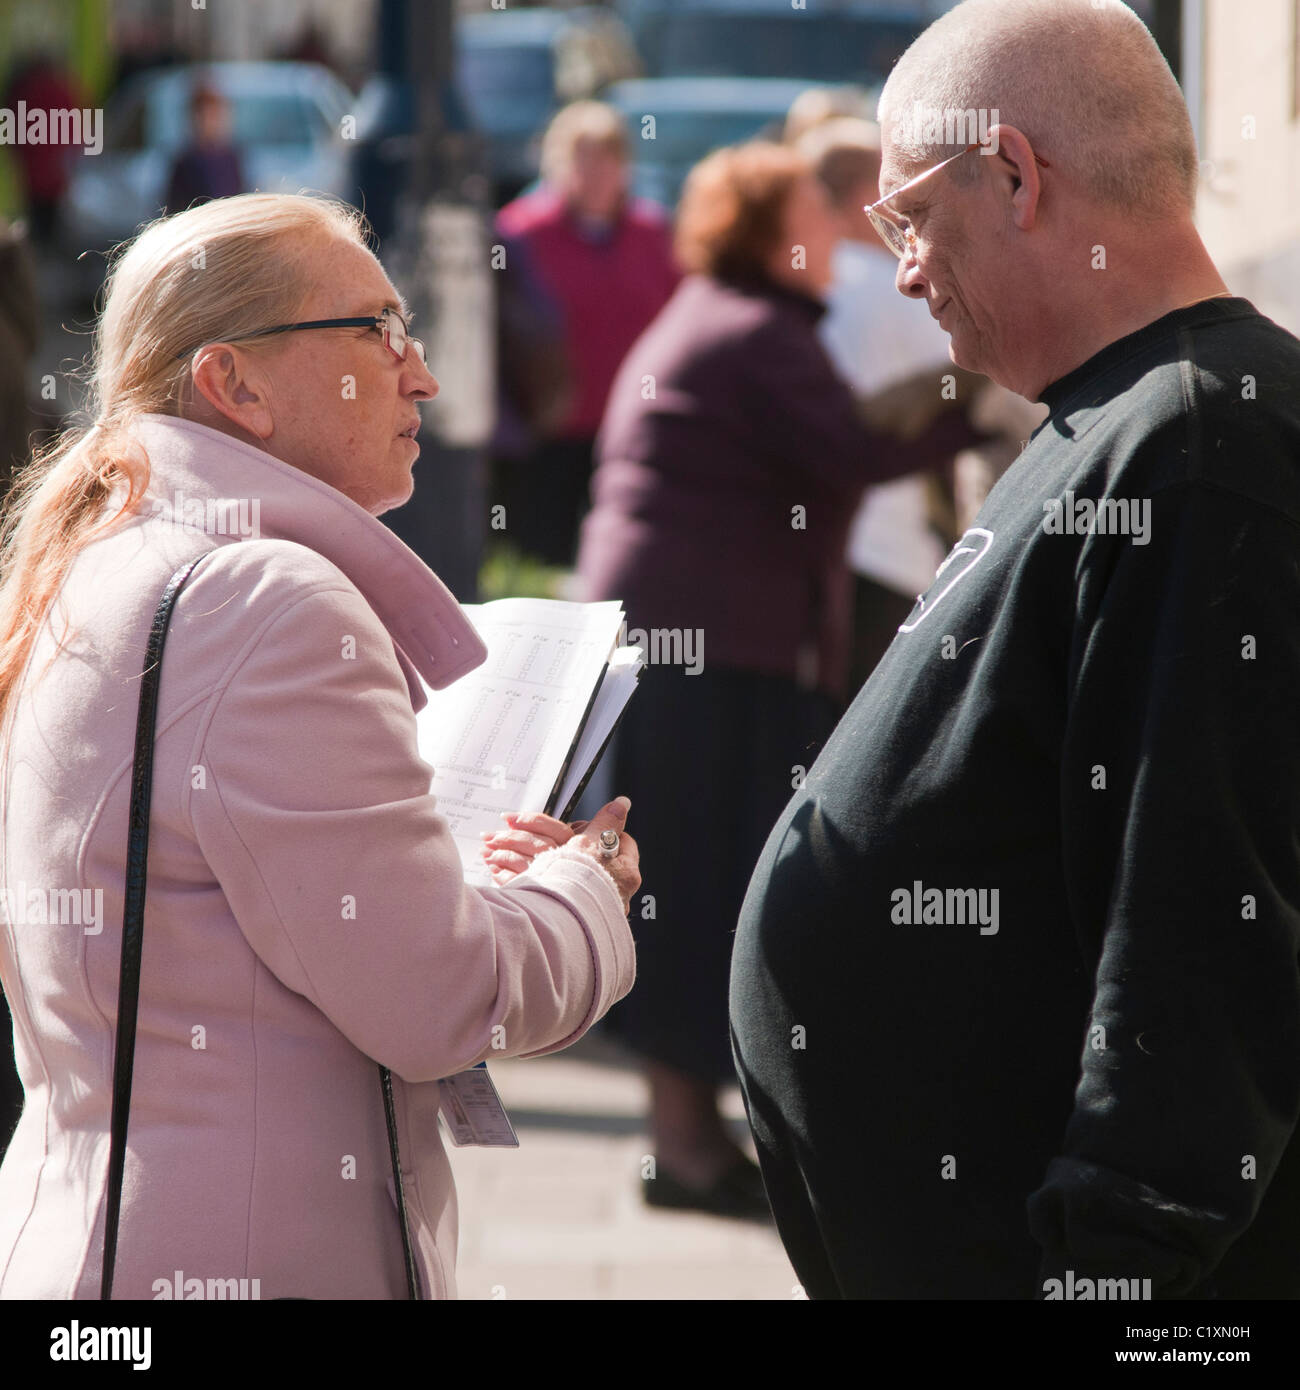 A woman doing a street questionaire public opinion poll survey, UK - Stock Image